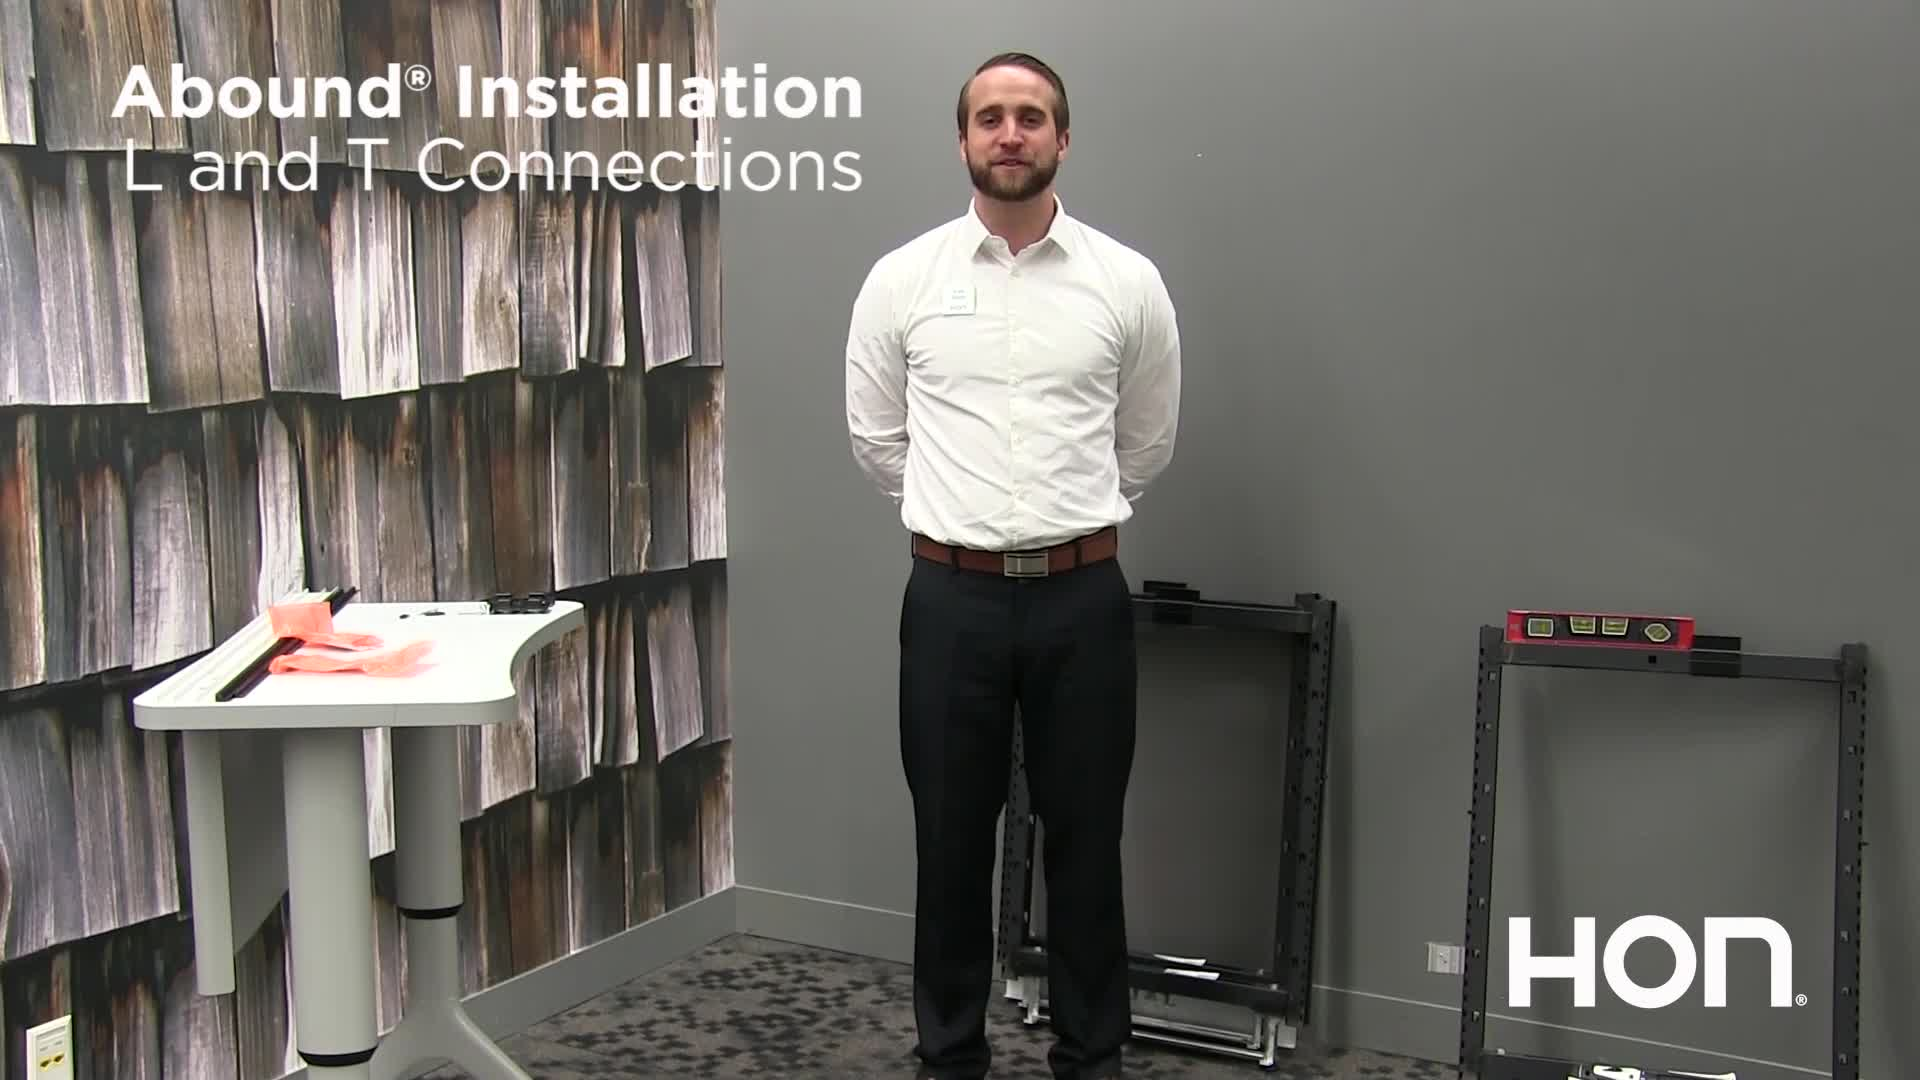 Abound Tips and Tricks - Installation L and T Connections video link